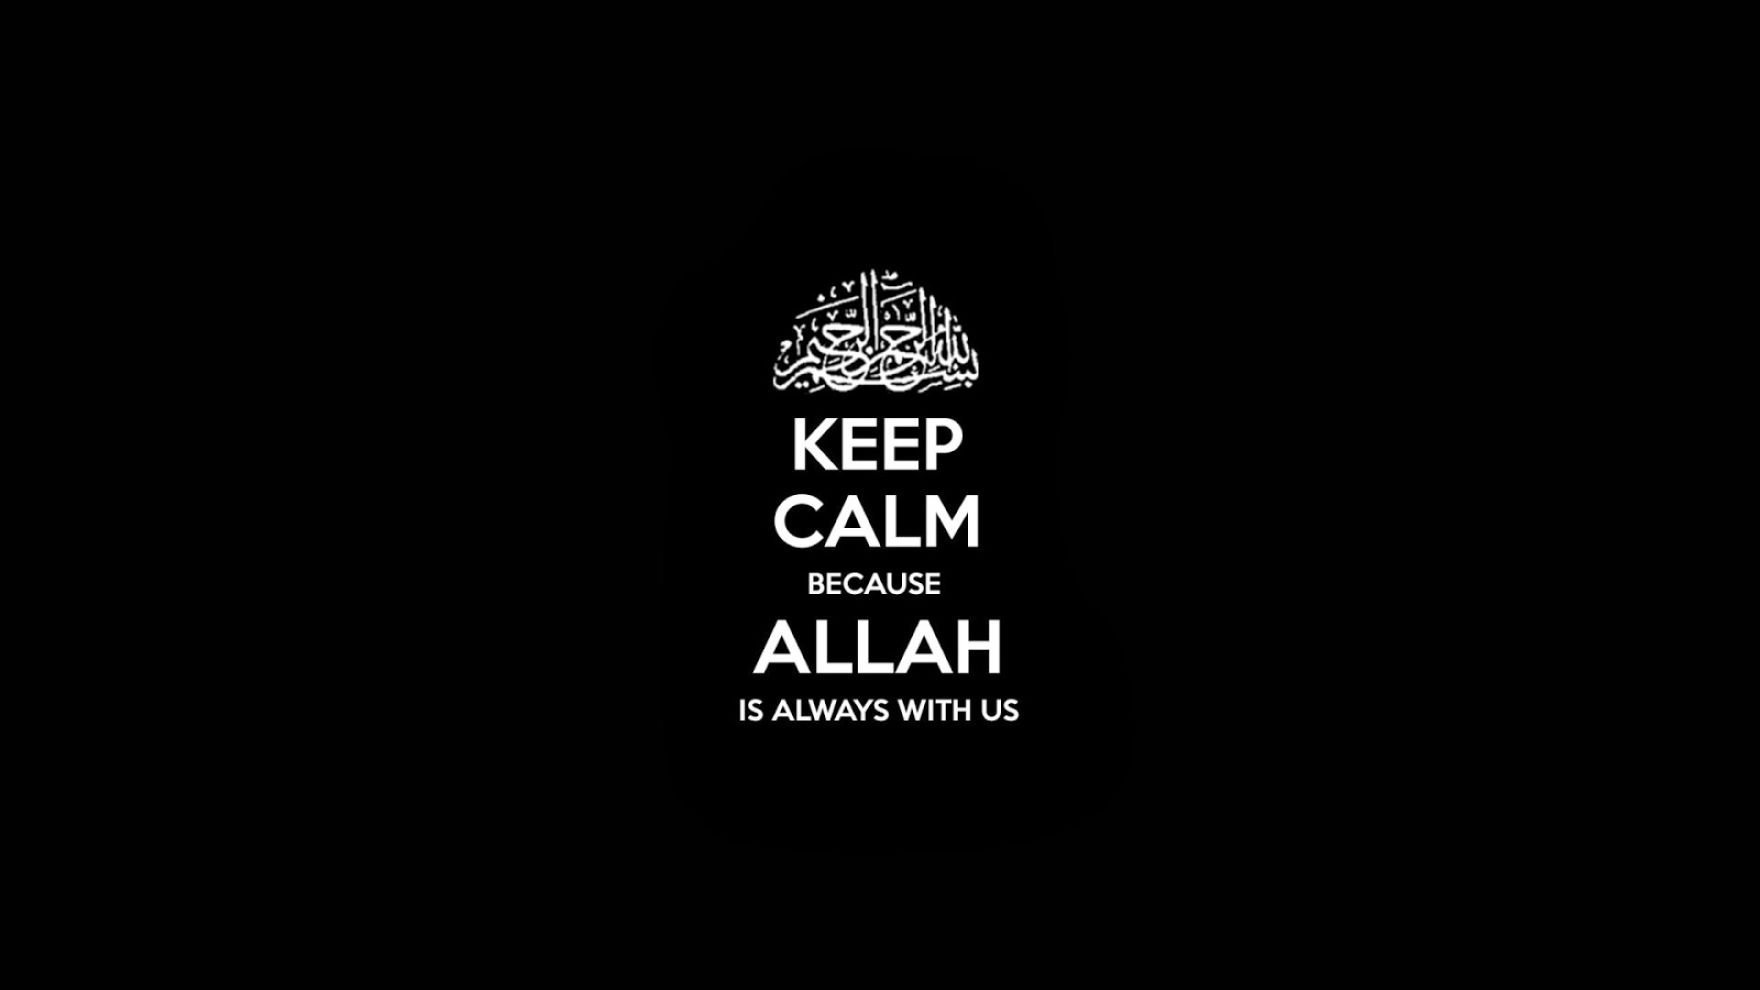 quotes keep calm allah wallpaper: desktop hd wallpaper - download